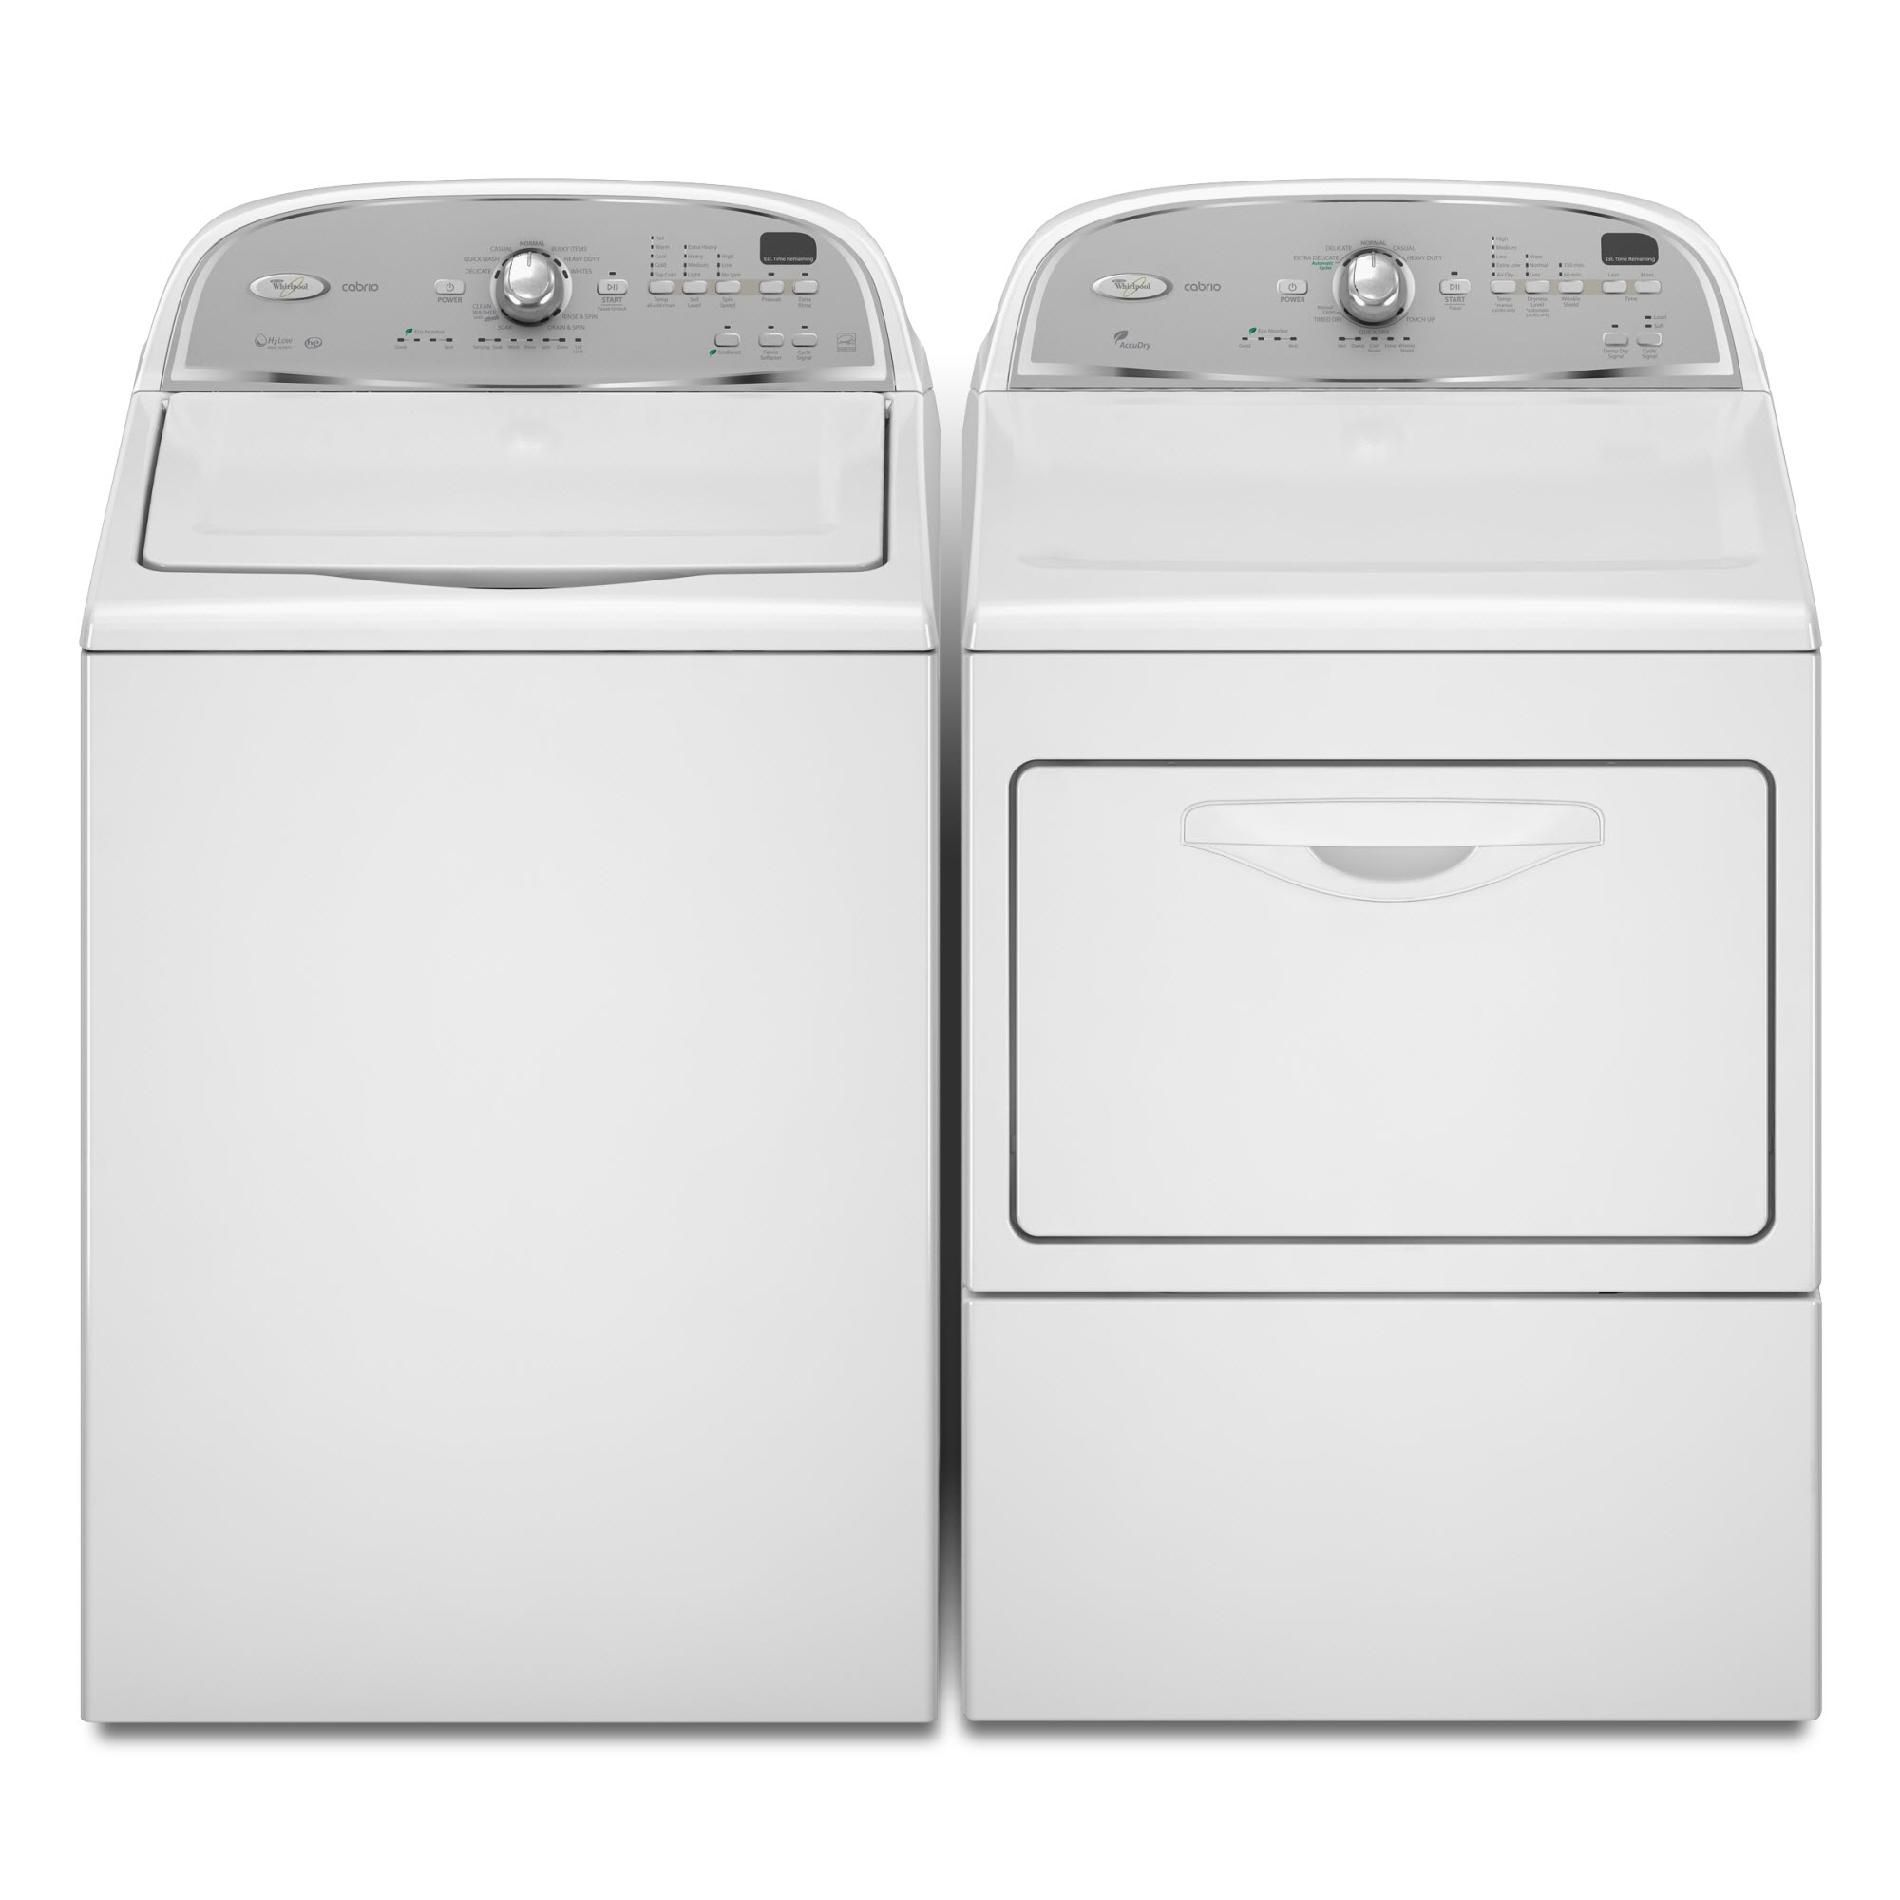 Whirlpool 3.6 cu. ft. Cabrio High-Efficiency Top-Load Washer